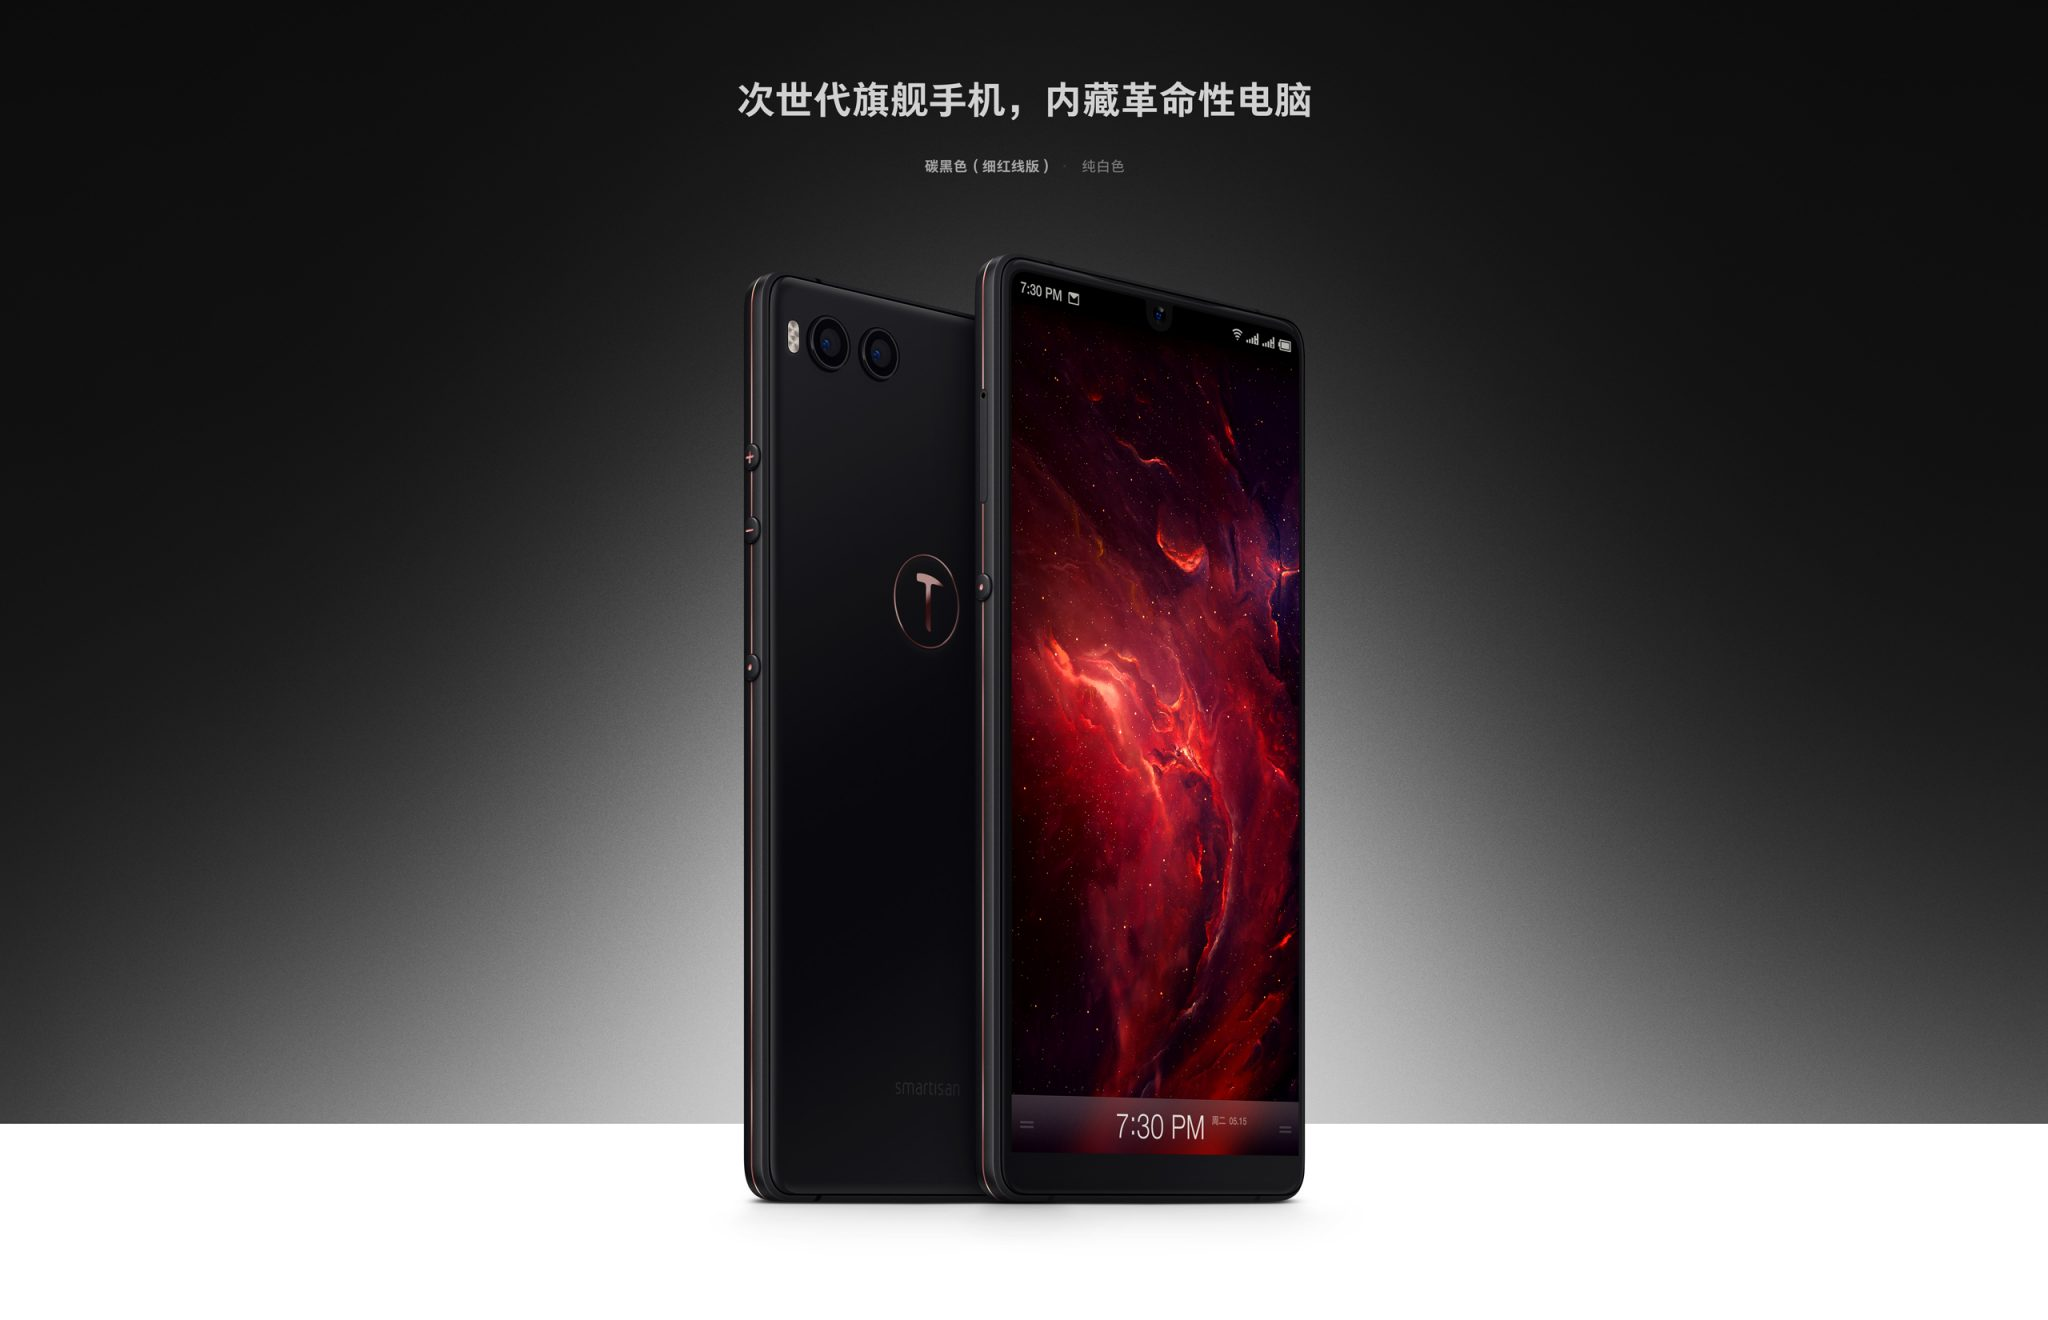 Smartisan R1 is the world's first smartphone with 1TB internal storage 1